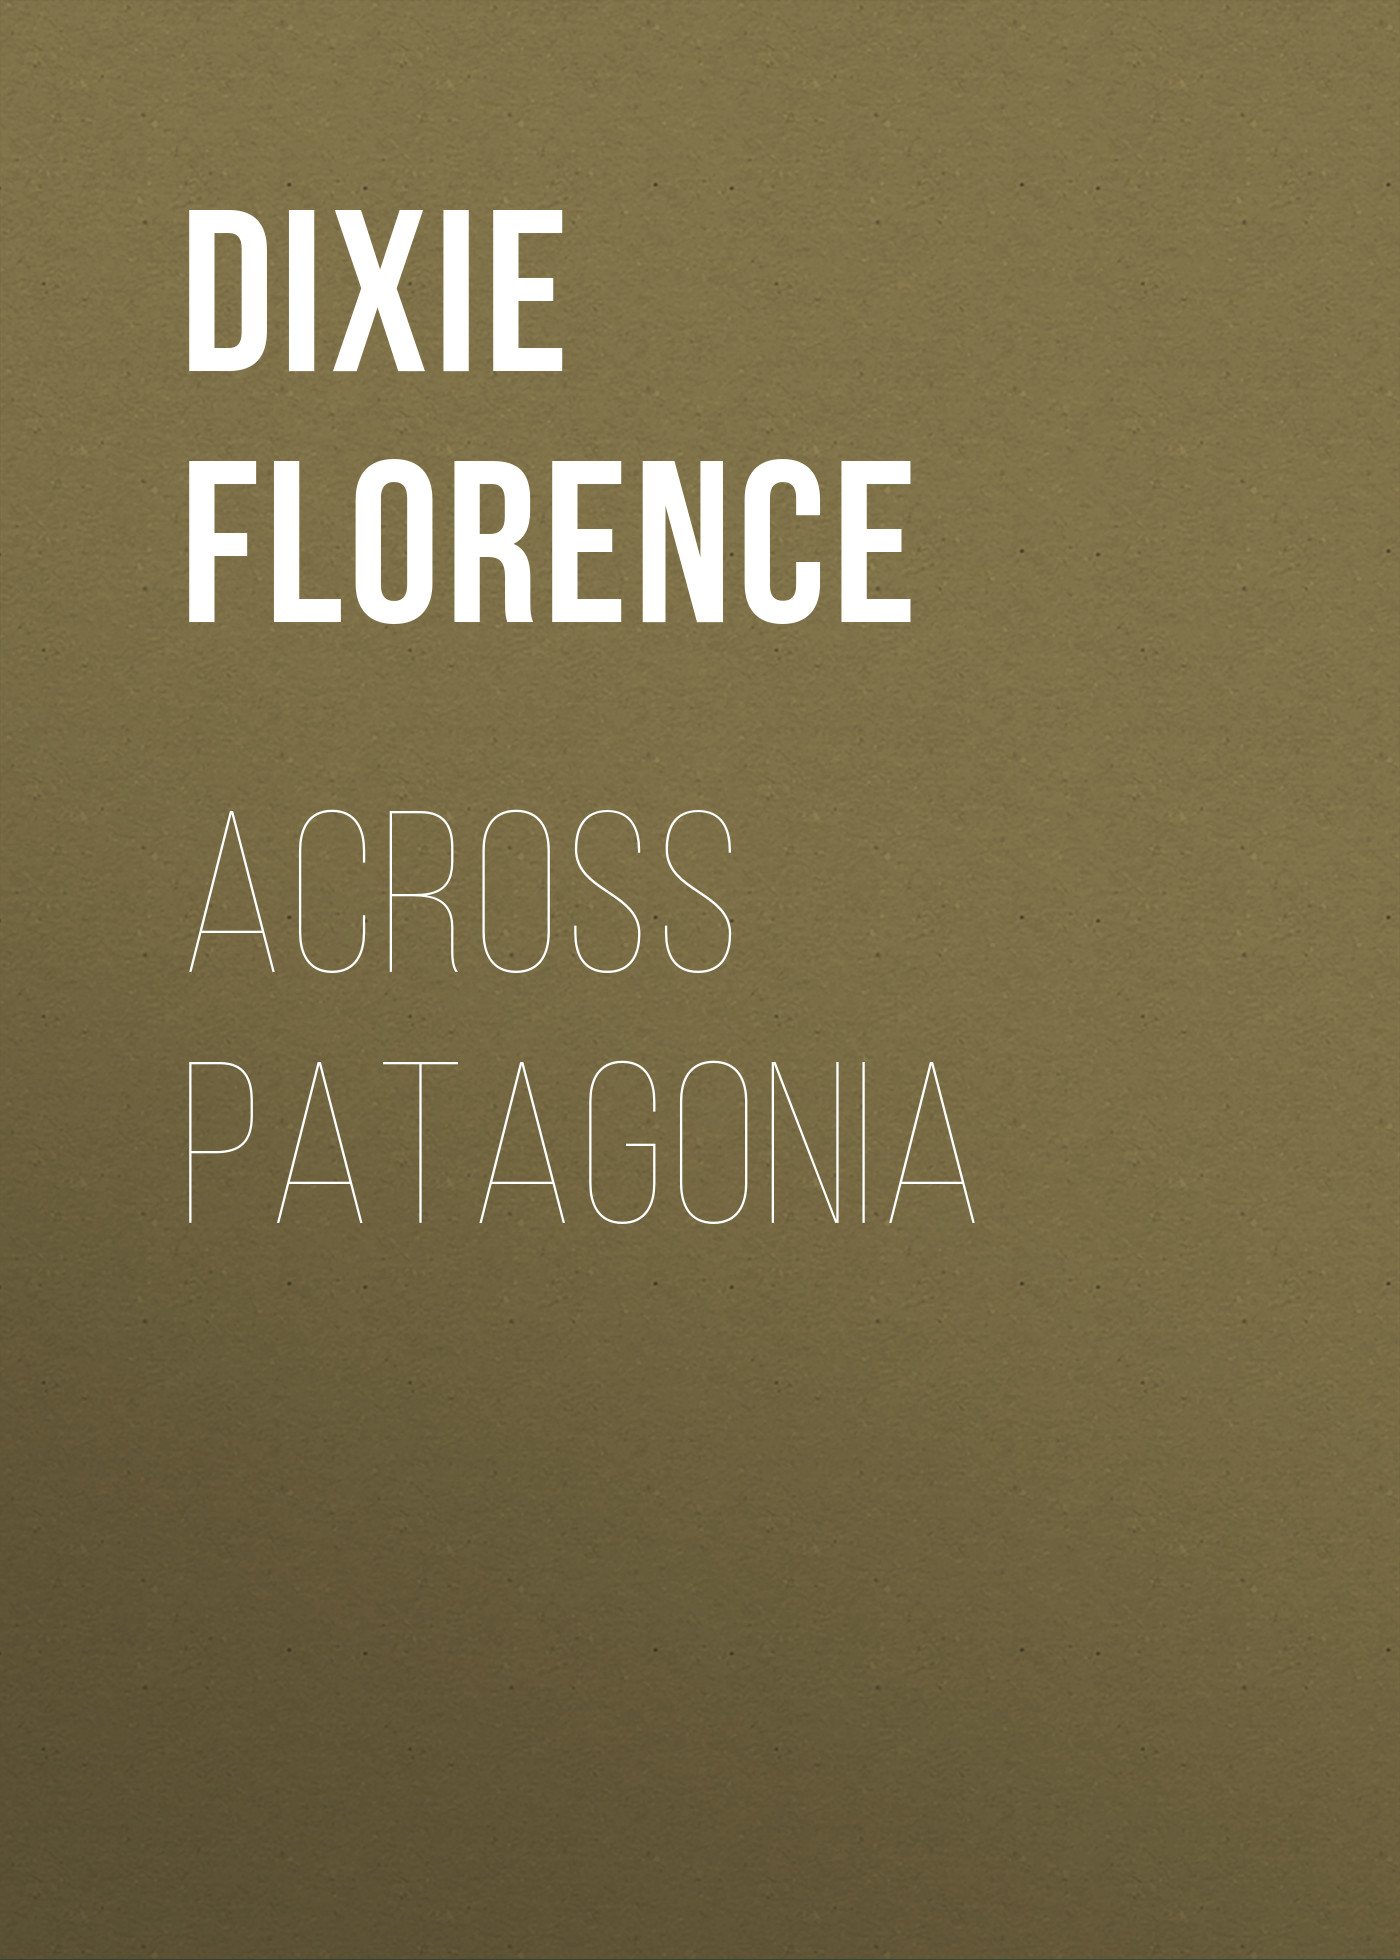 Dixie Florence Across Patagonia